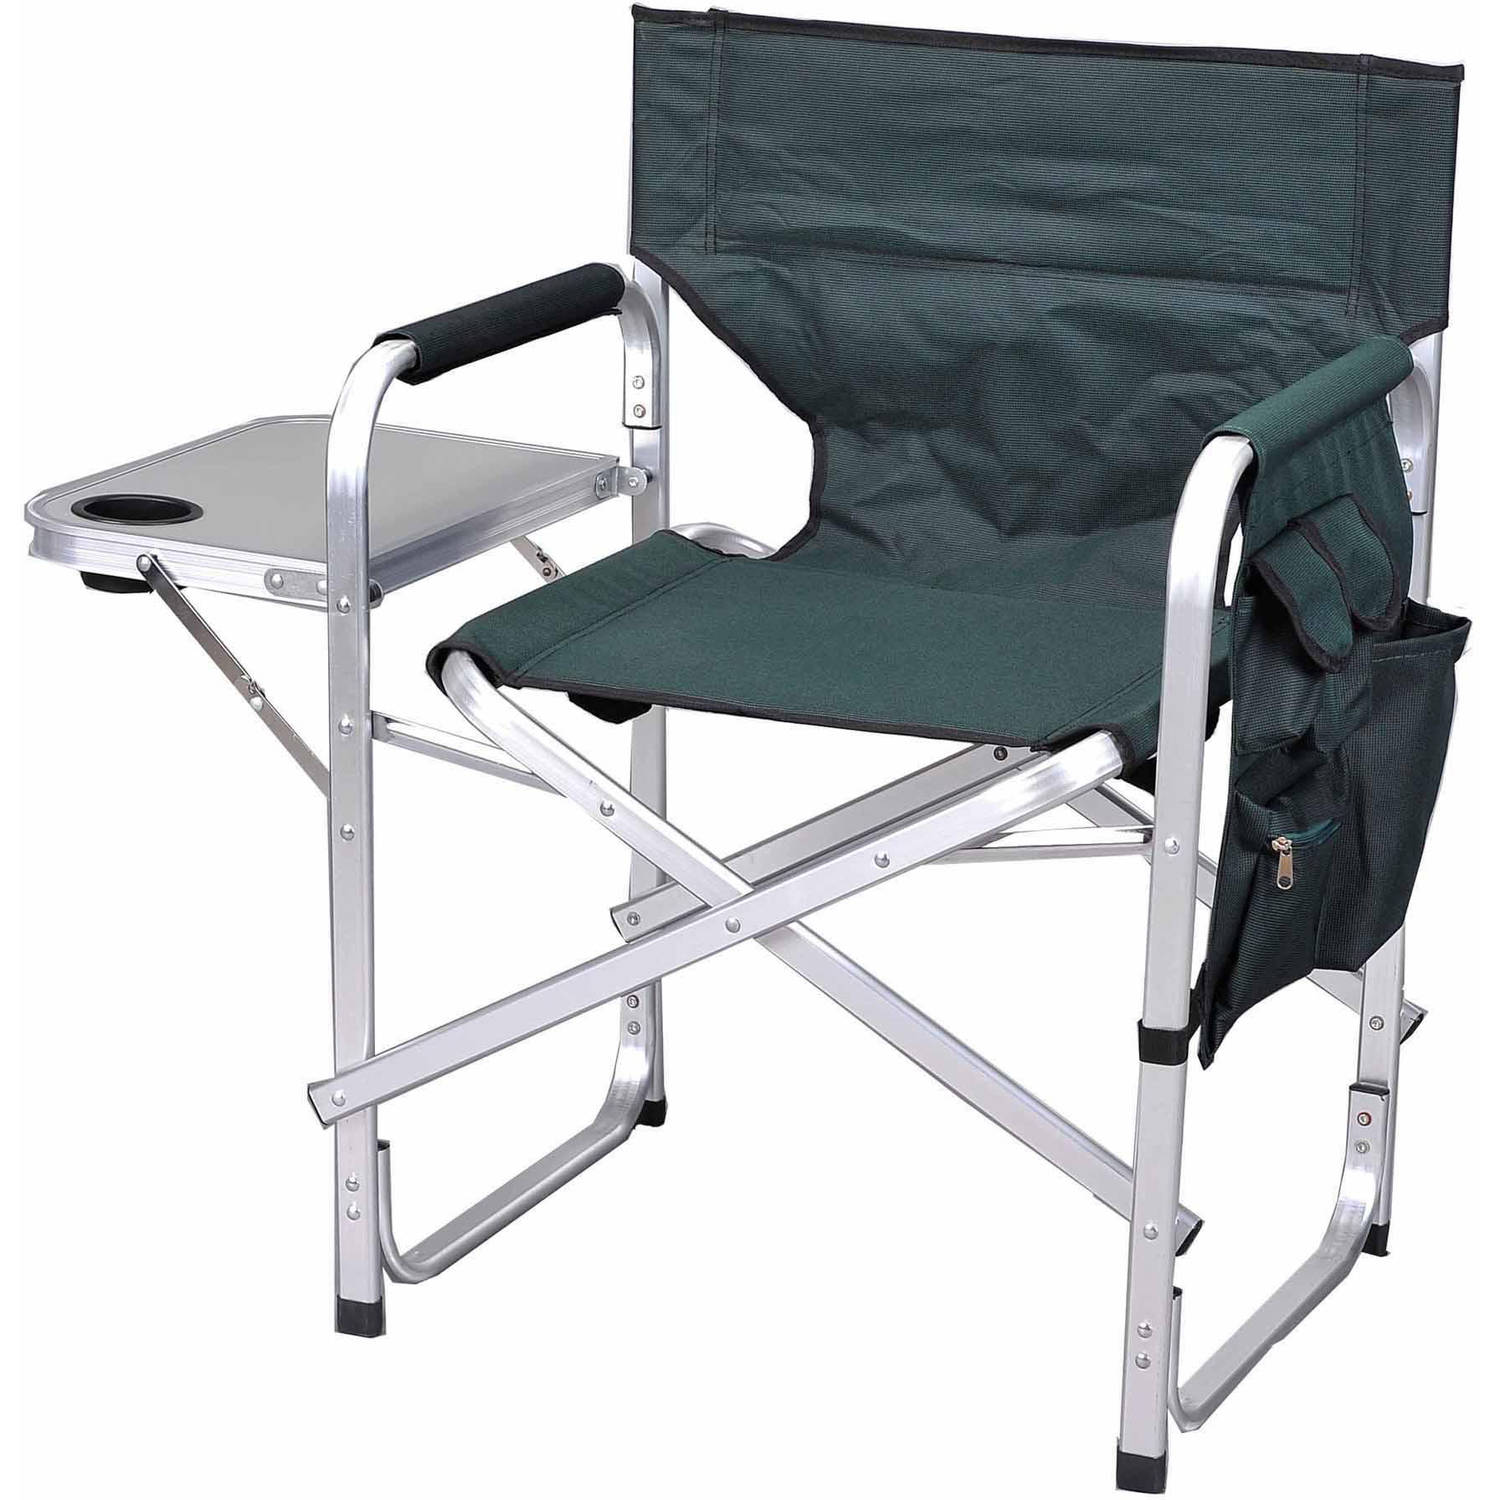 Ming s Mark Folding Director s Chair Walmart